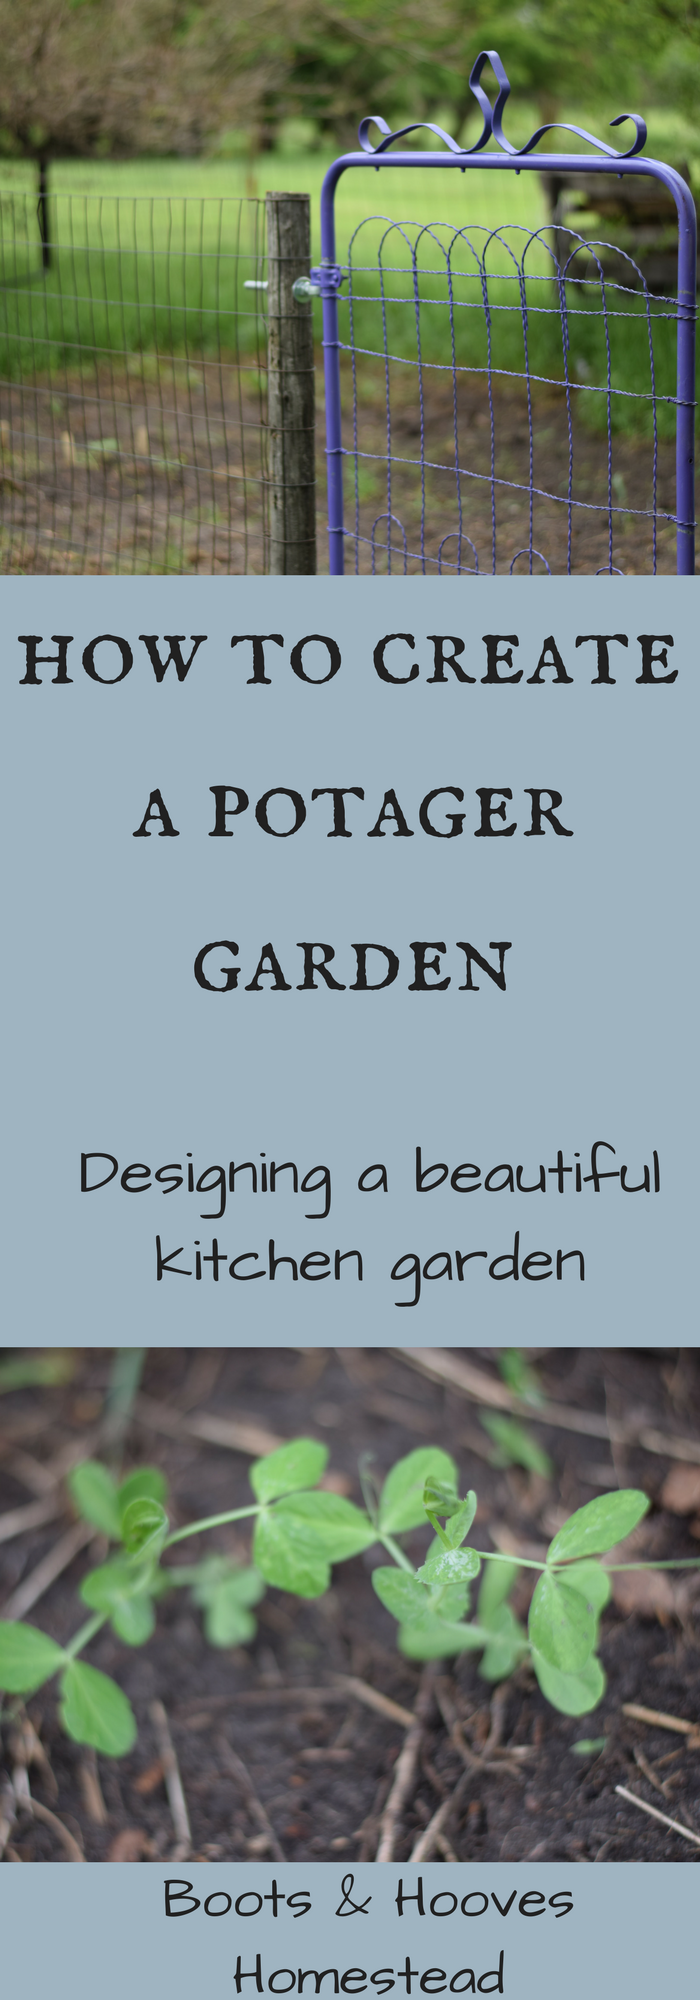 How to Create a Potager Garden - Boots & Hooves Homestead | Home ...